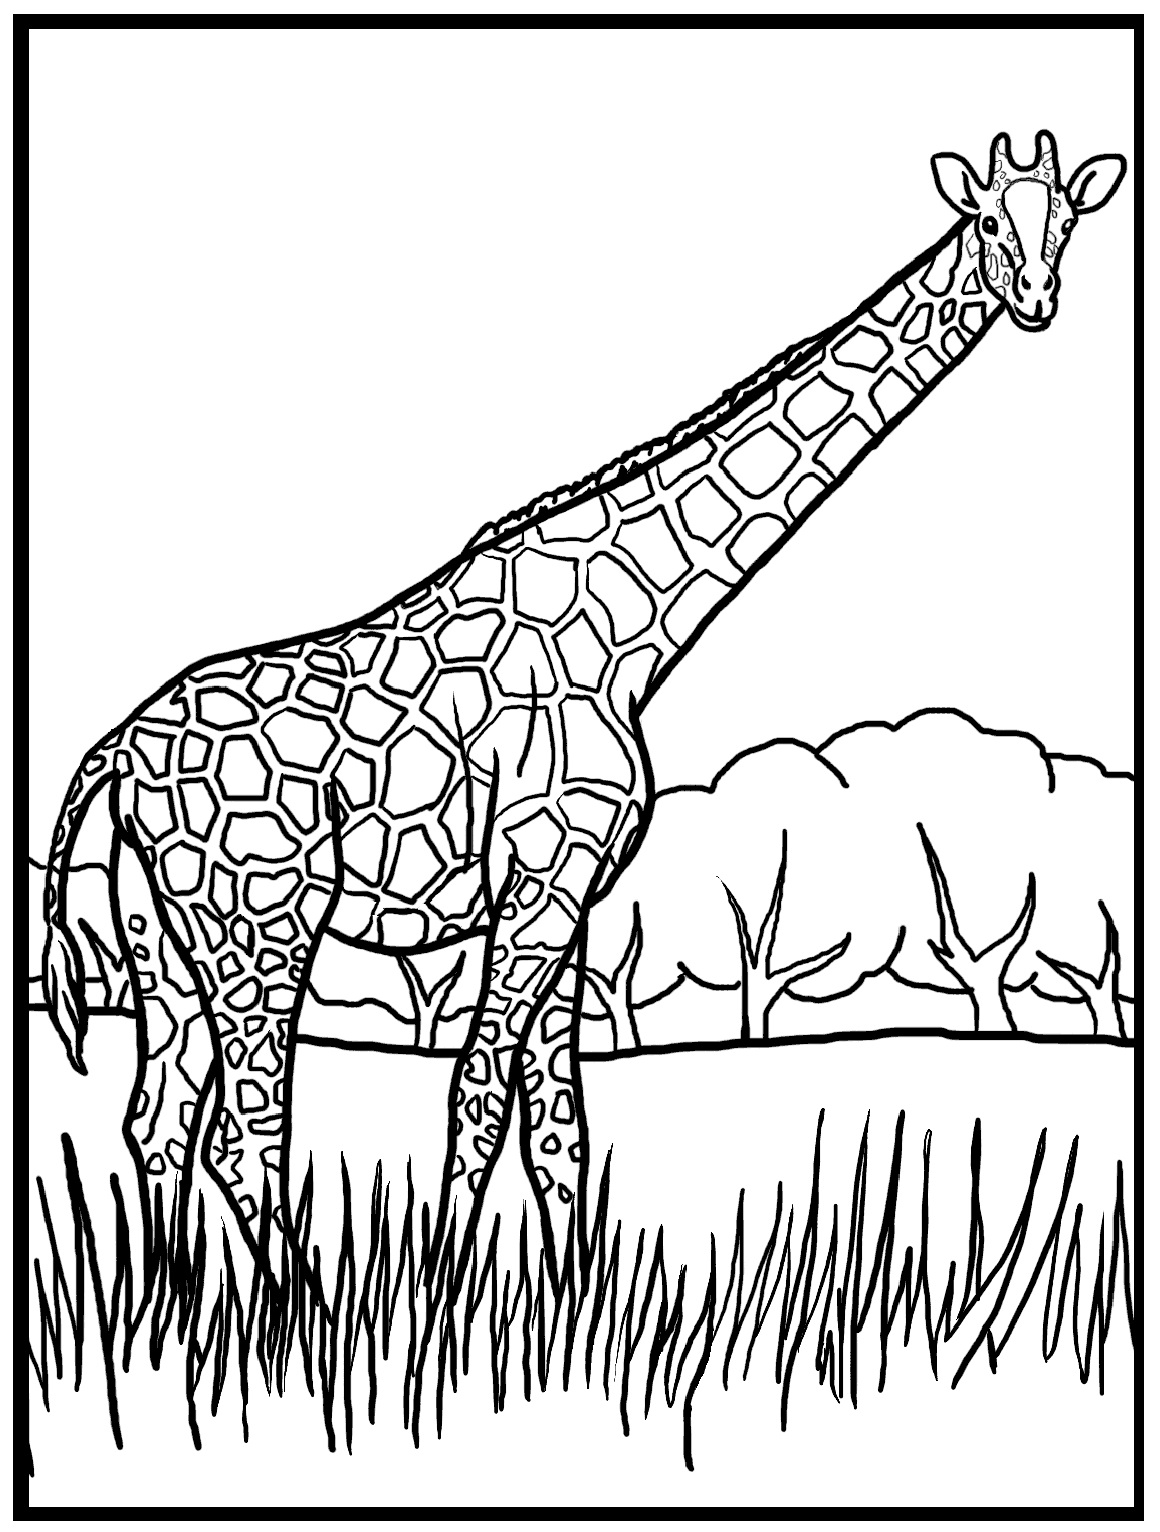 colouring pages of giraffe giraffe coloring pages getcoloringpagescom giraffe colouring of pages